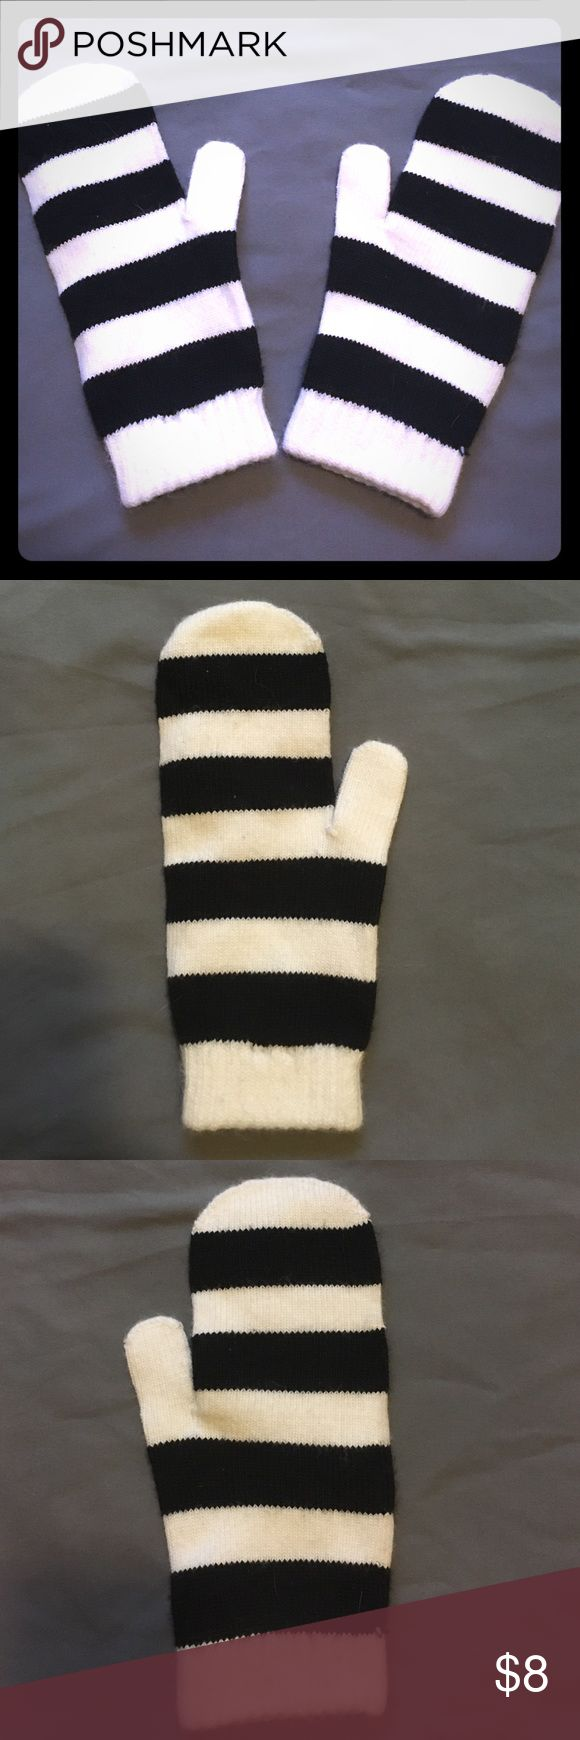 Black and white stripes mittens Warm and cozy mittens! Black and white stripe design, H&M Accessories Gloves & Mittens